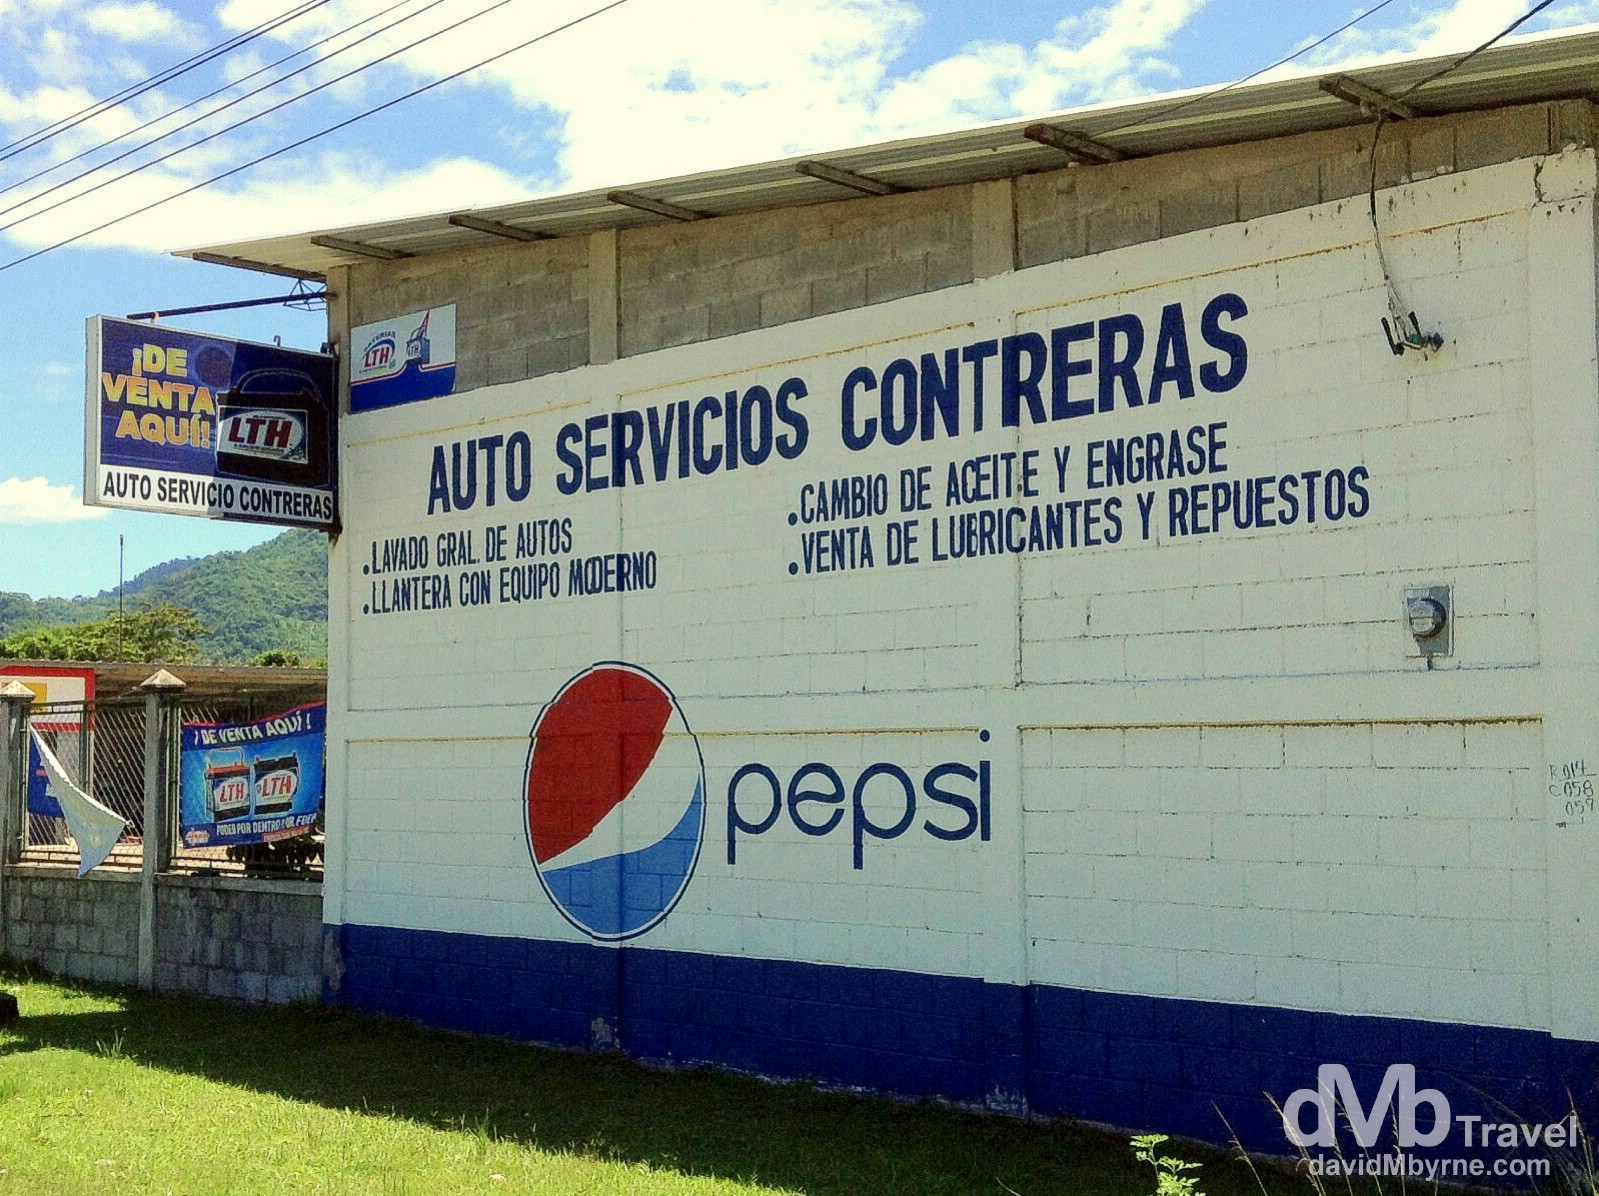 One aspect of Central America that I've noticed is the abundance of Pespi advertising. It's everywhere, like here on the side of a garage on the outskirts of the village of Pina Blanca. In this part of the world at least Coco-Cola plays a distant second fiddle to the big P. Western Honduras. June 12th 2013. (iPod)